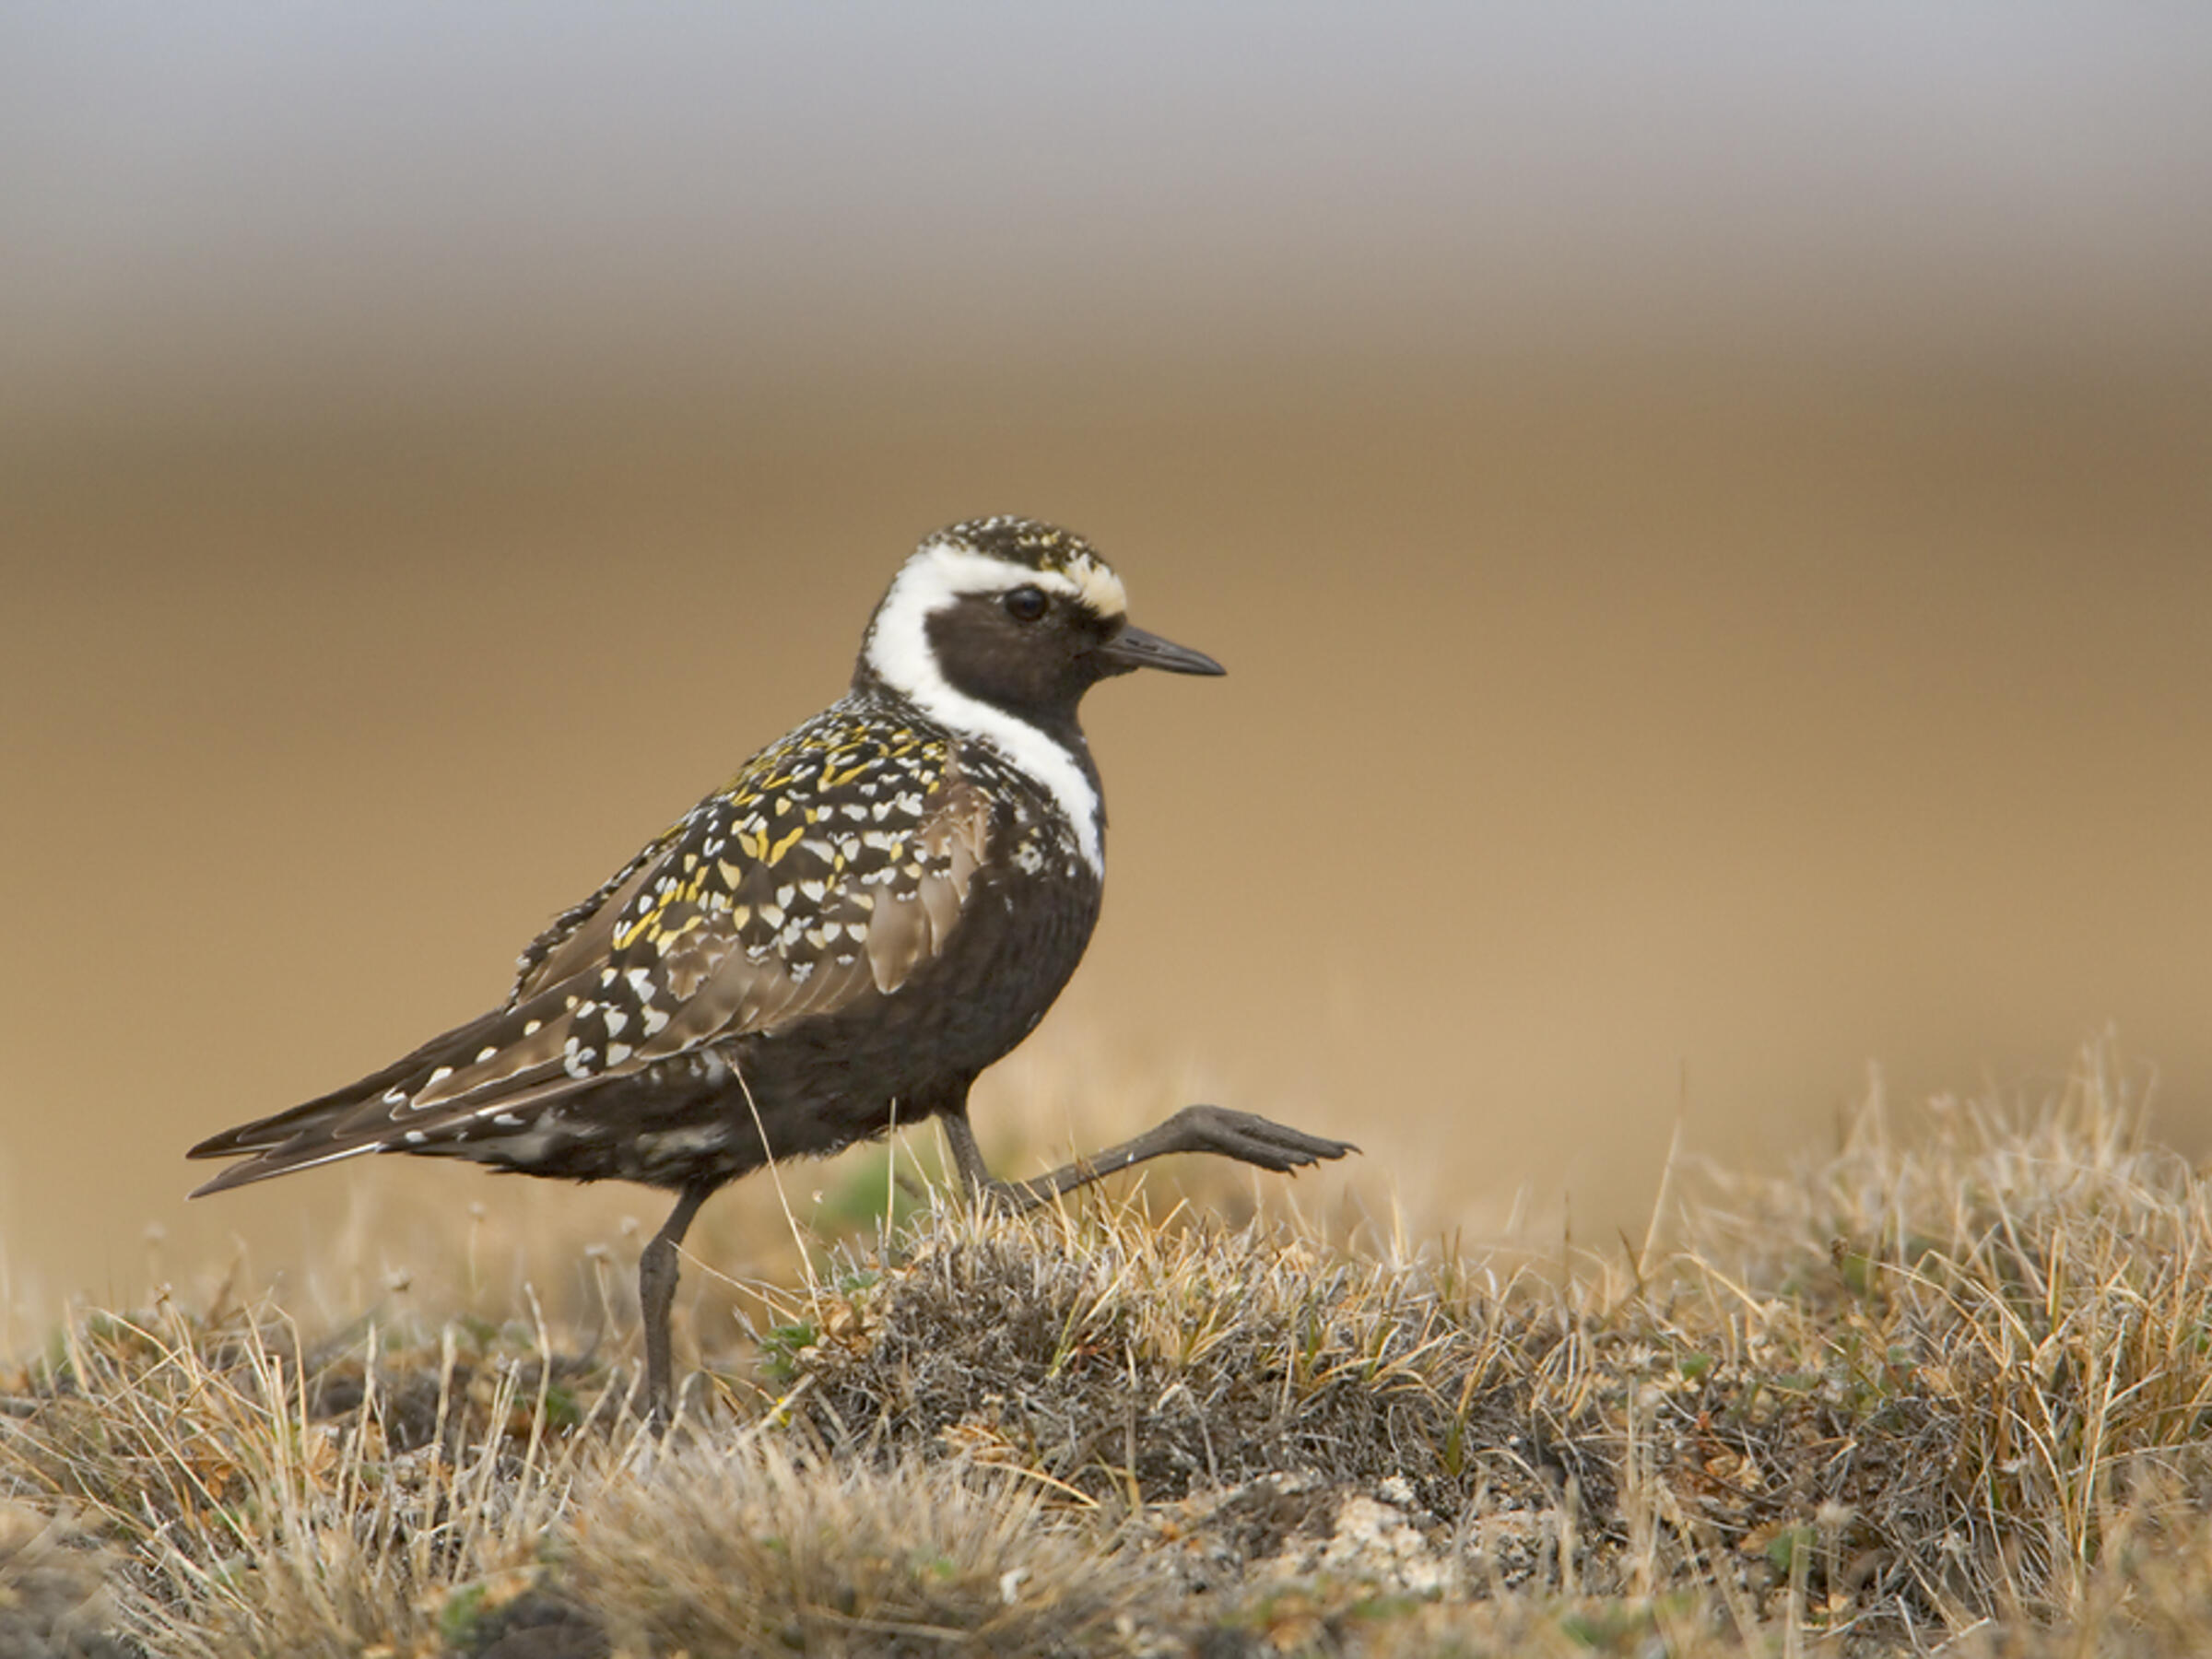 American Golden-Plover. Photo: Milo Burcham